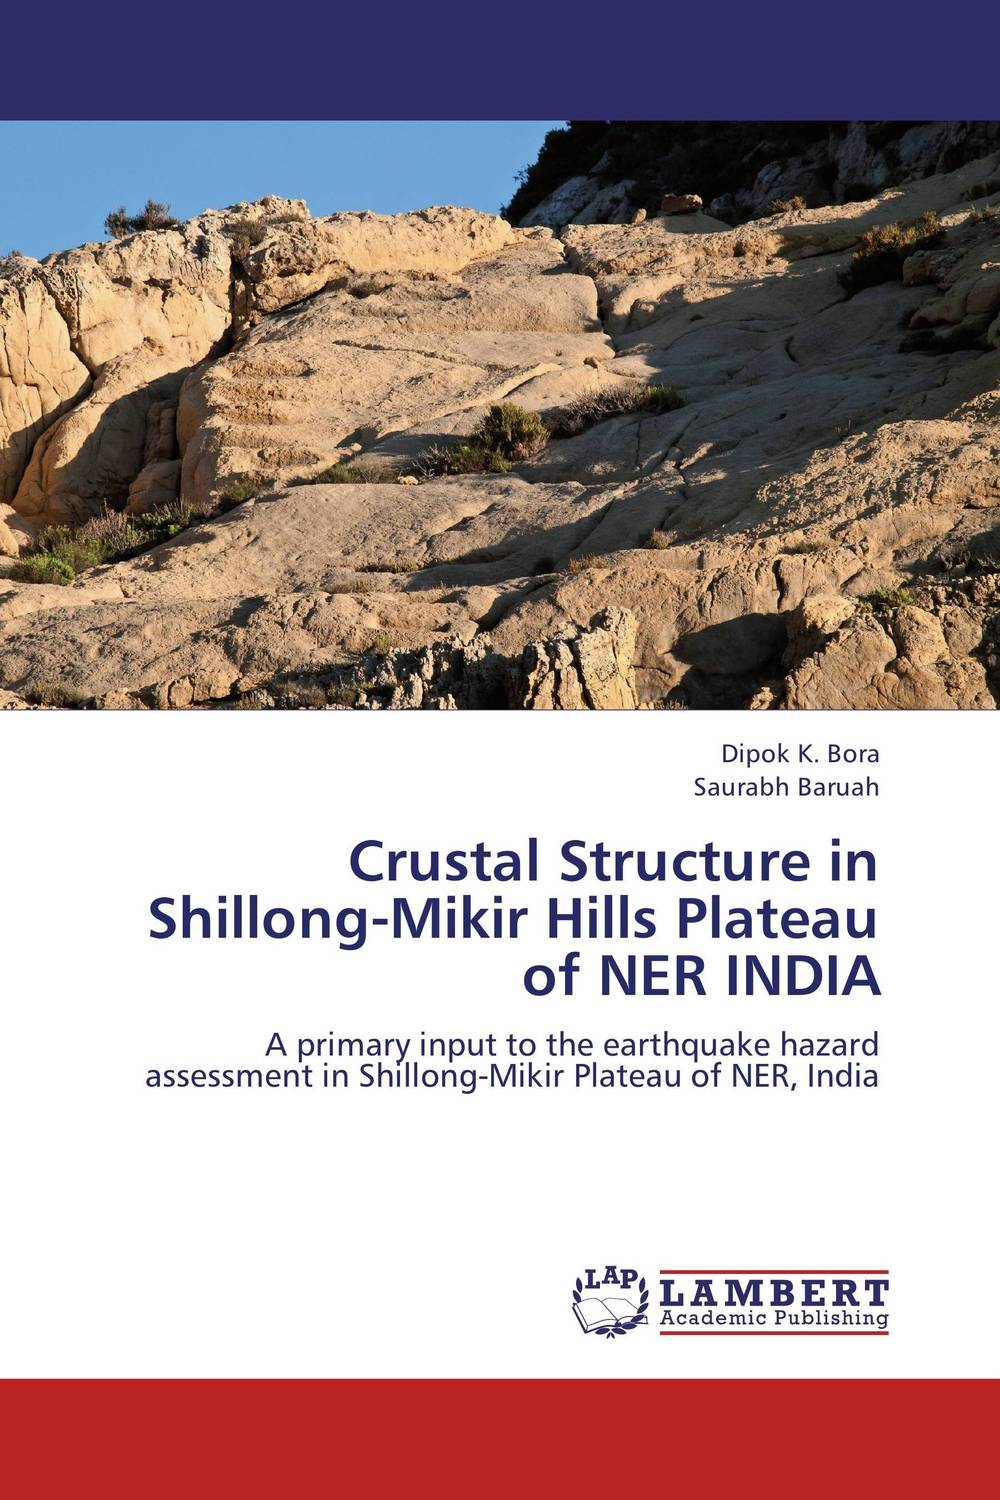 Фото Crustal Structure in Shillong-Mikir Hills Plateau of NER INDIA cervical cancer in amhara region in ethiopia